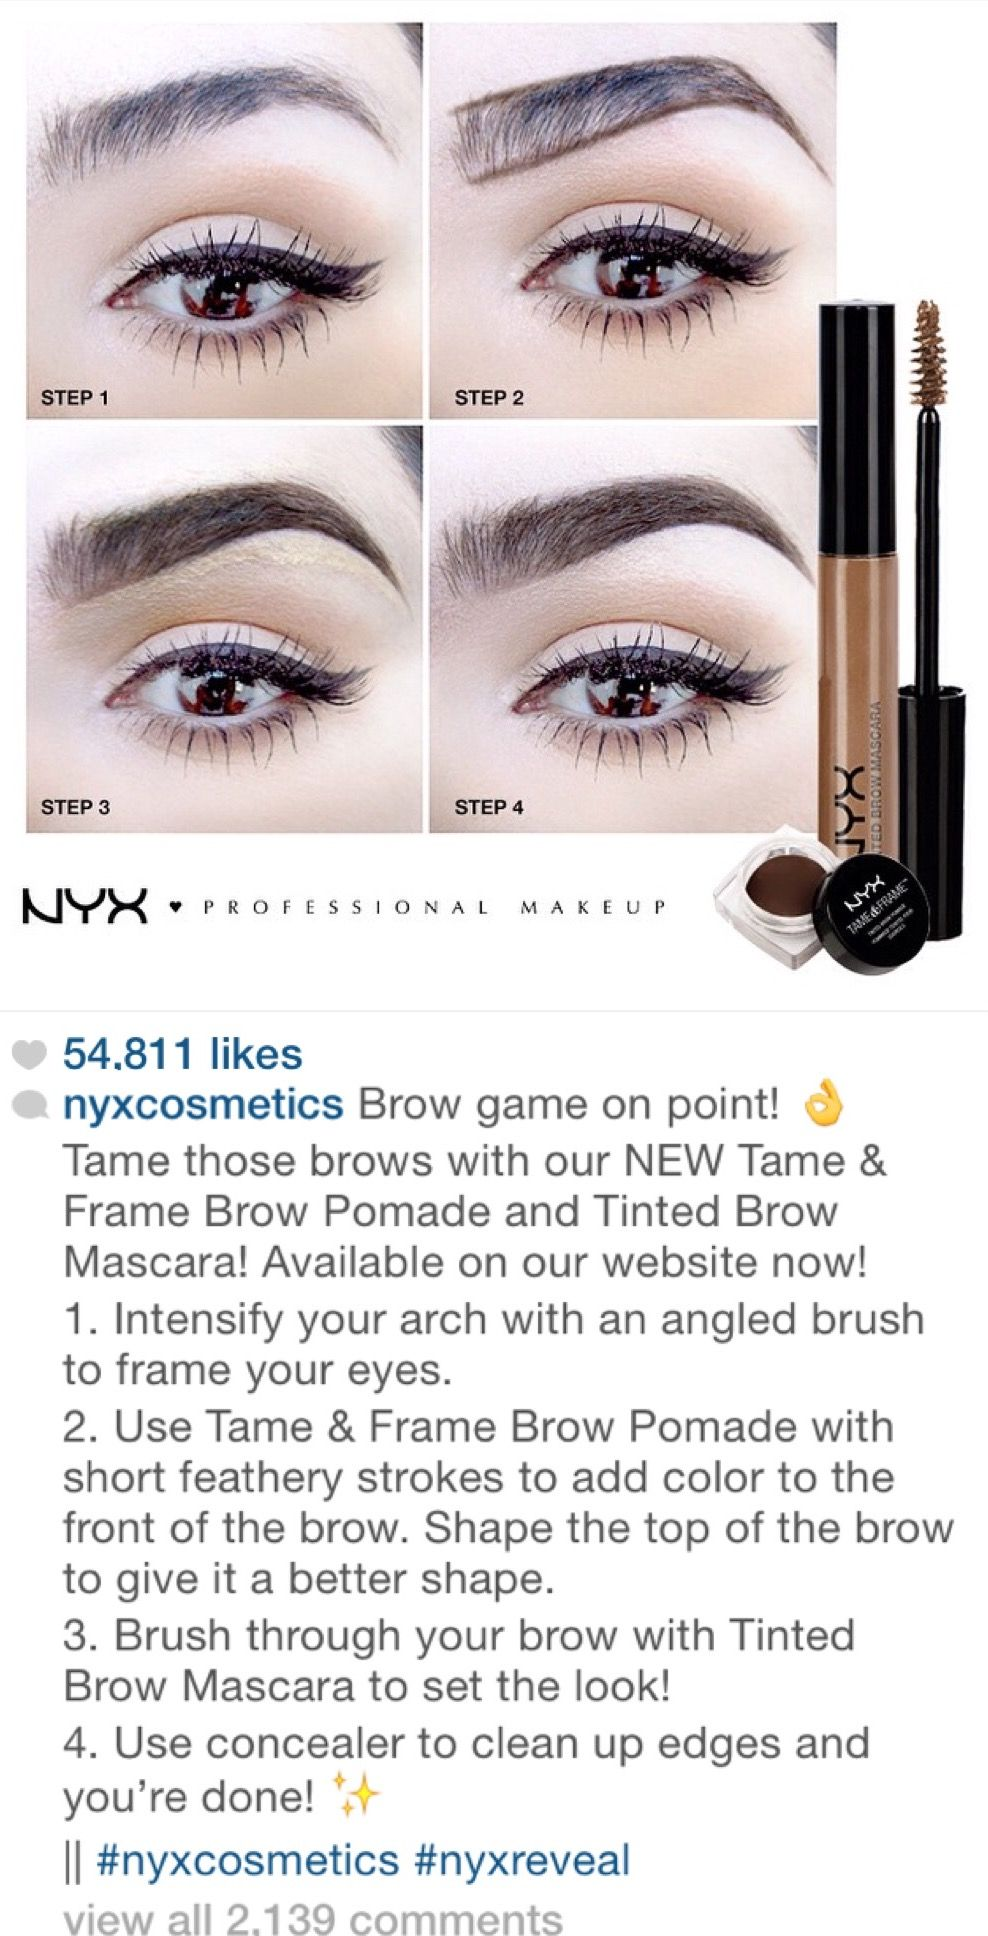 Nyx Instagram Tutorial For Great Eyebrows With Their Pomade And